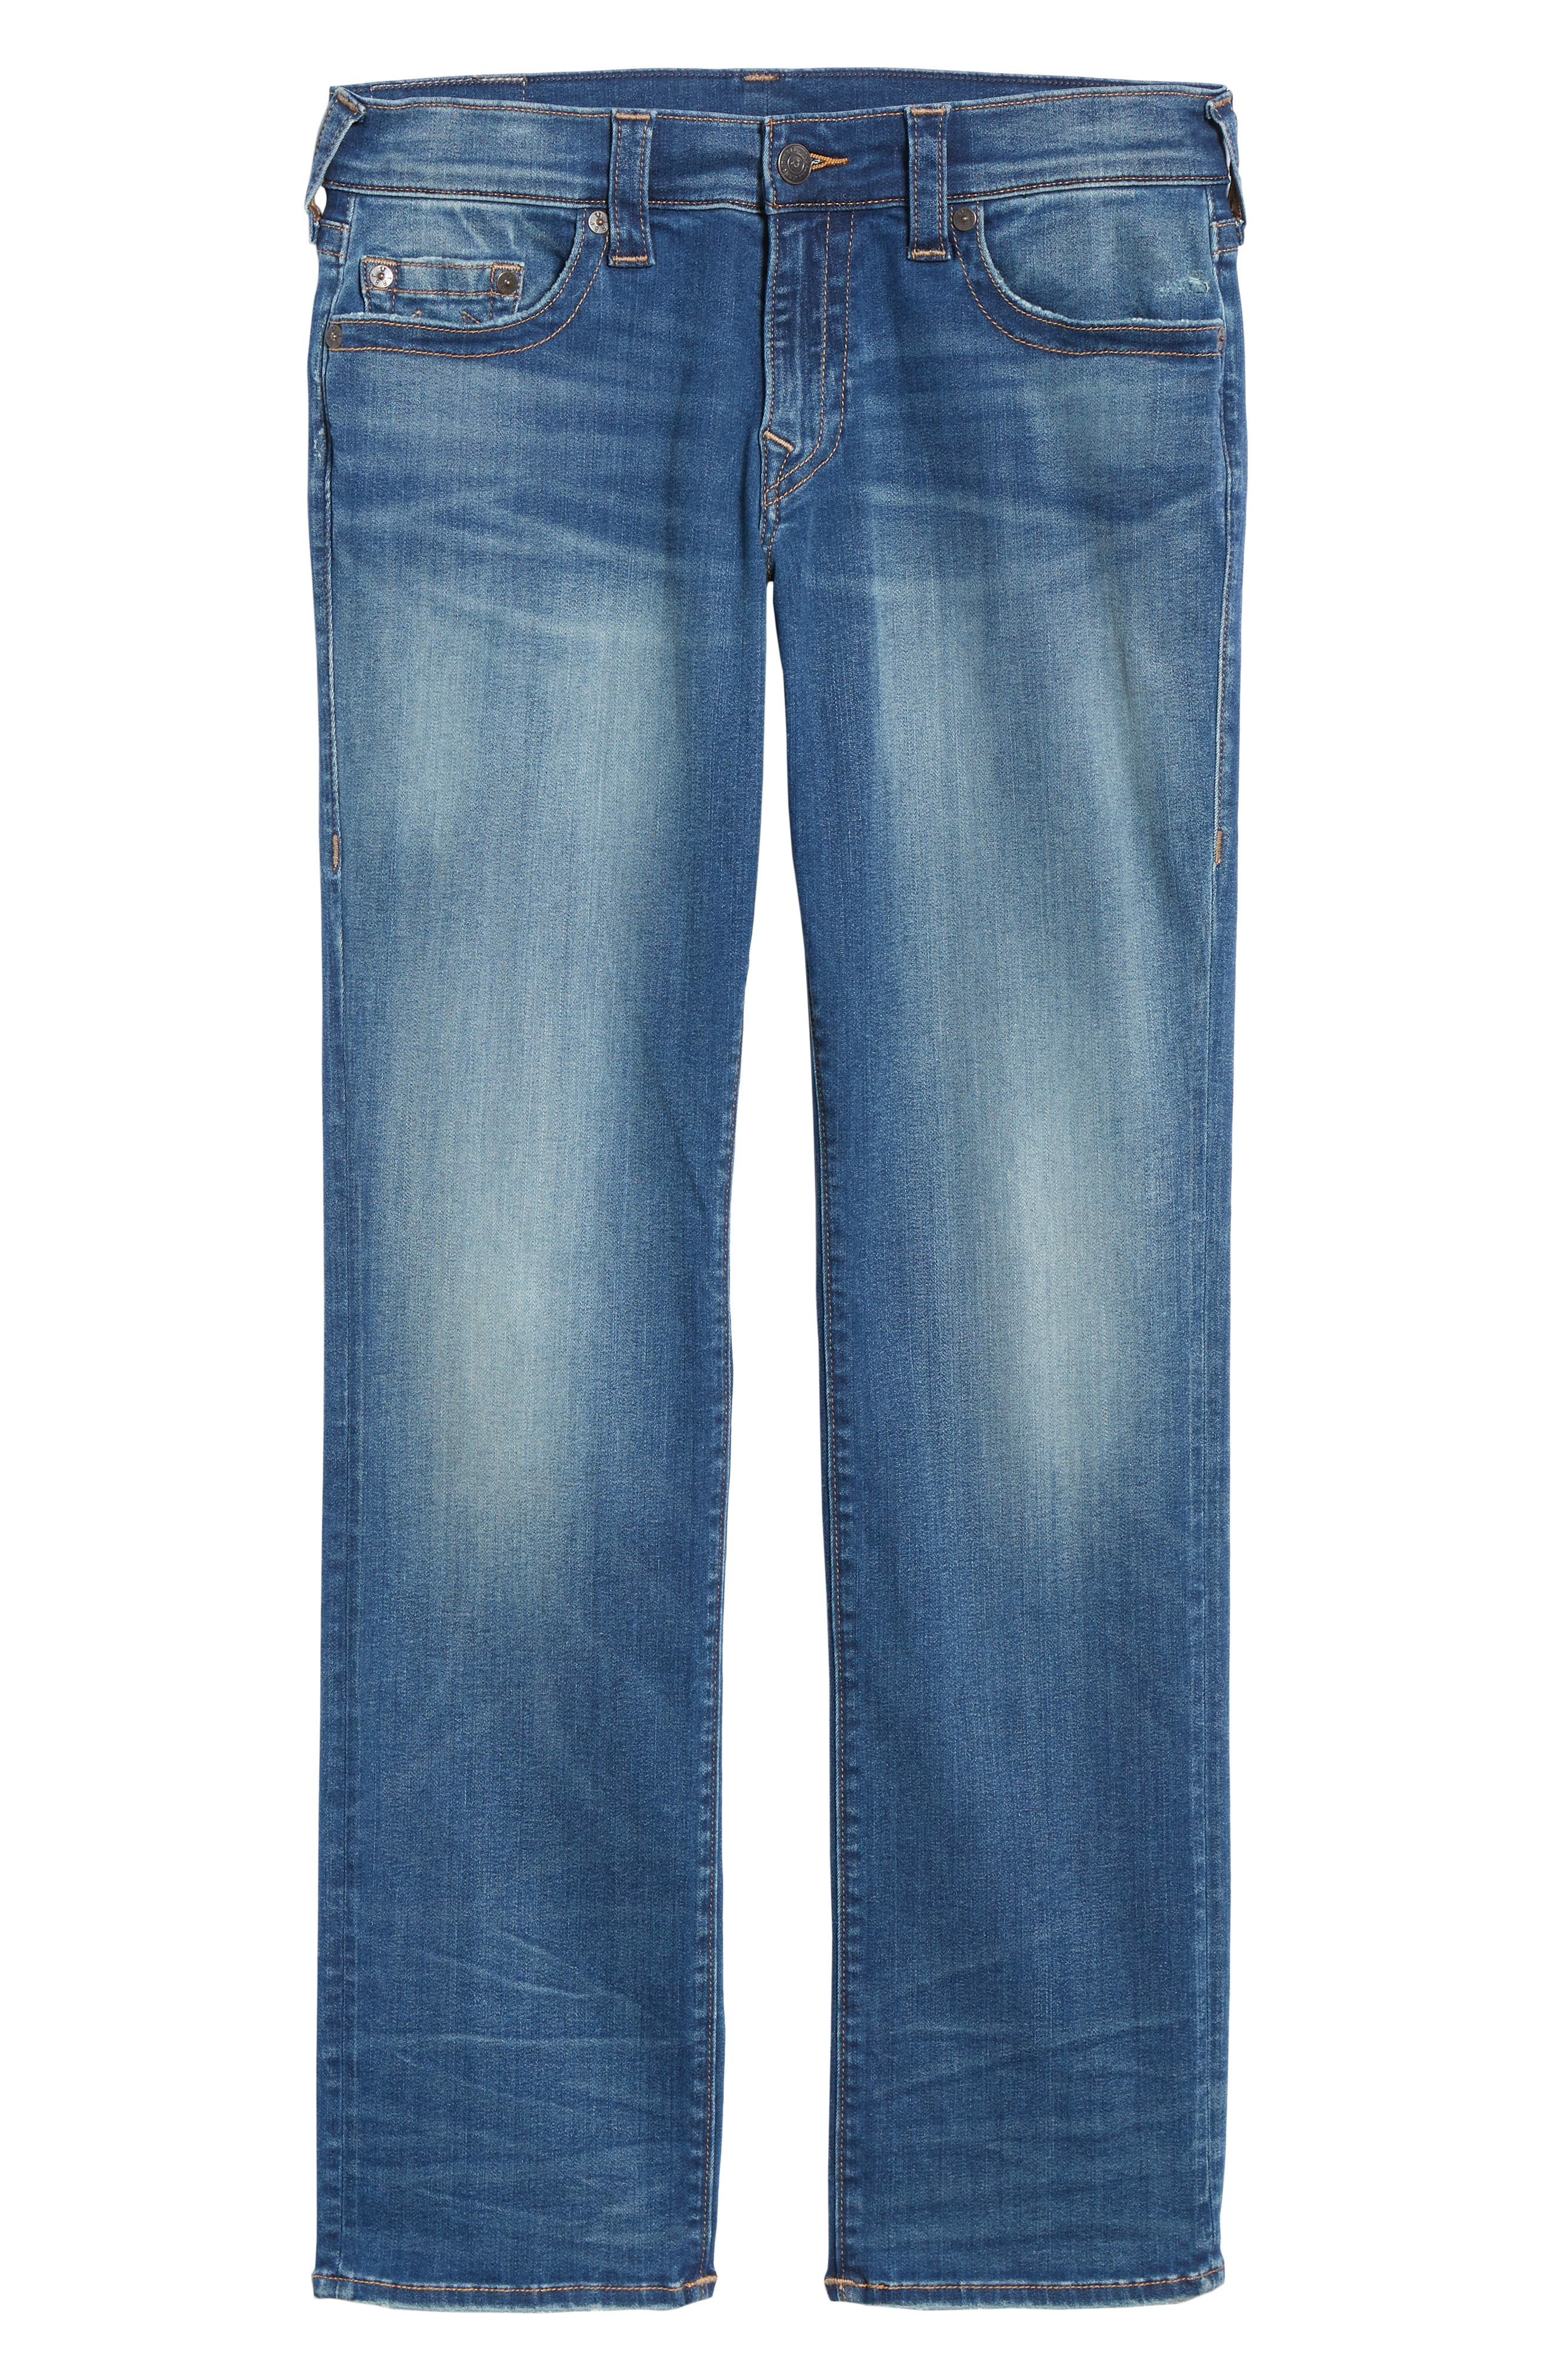 Ricky Relaxed Fit Jeans,                             Alternate thumbnail 6, color,                             SUPERNOVA BLUES